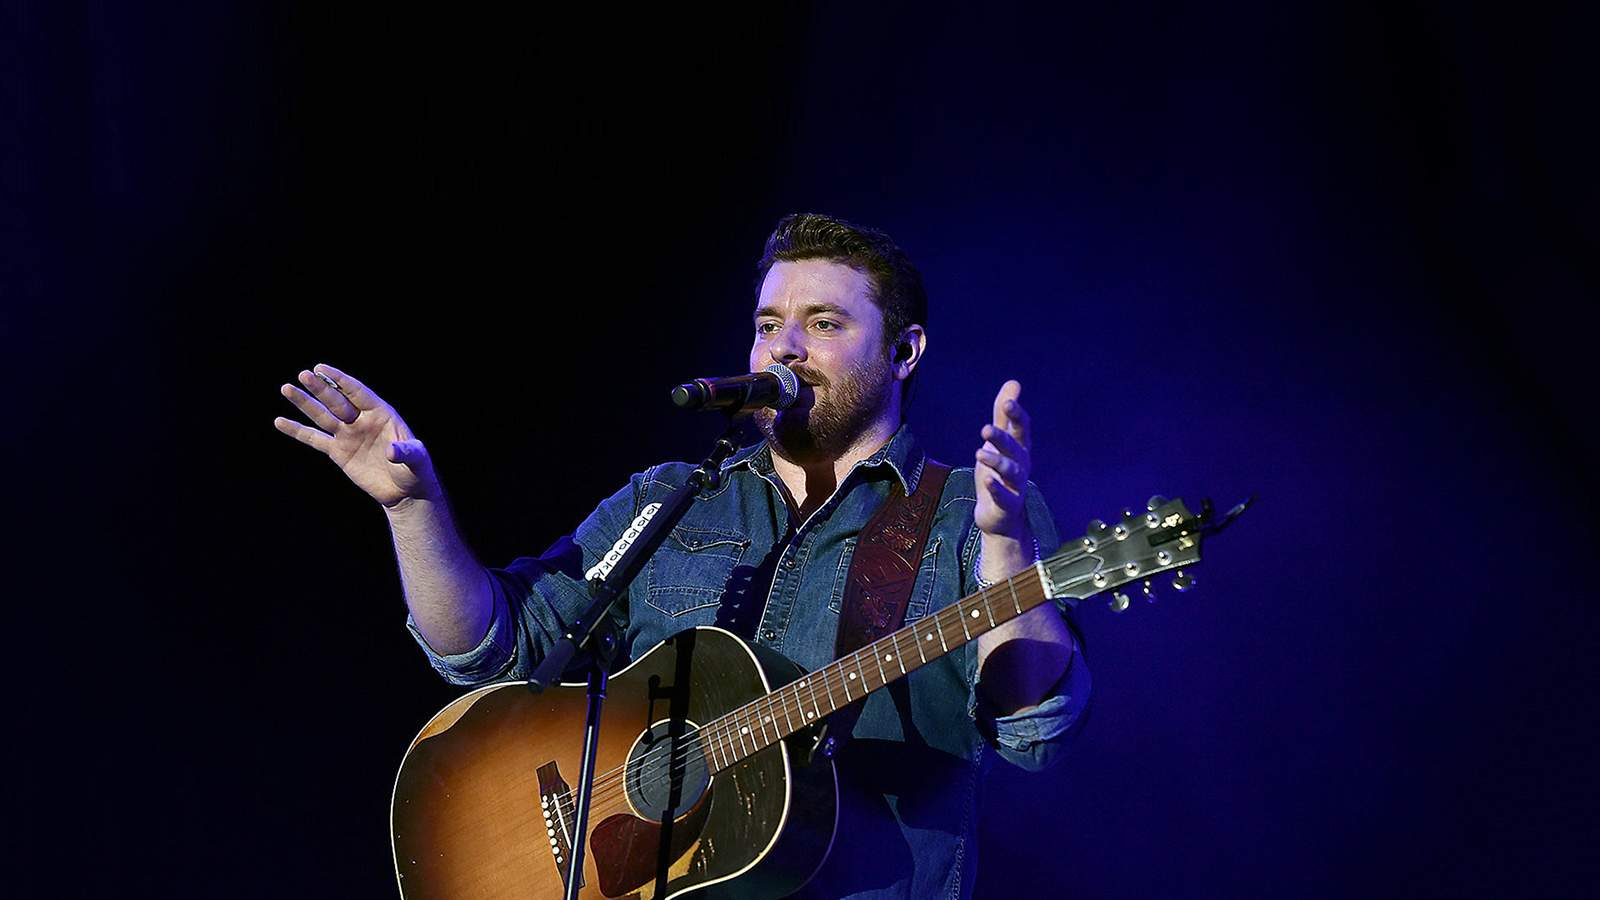 Chris Young (Rescheduled from 3/26/2020, 12/11/2020)